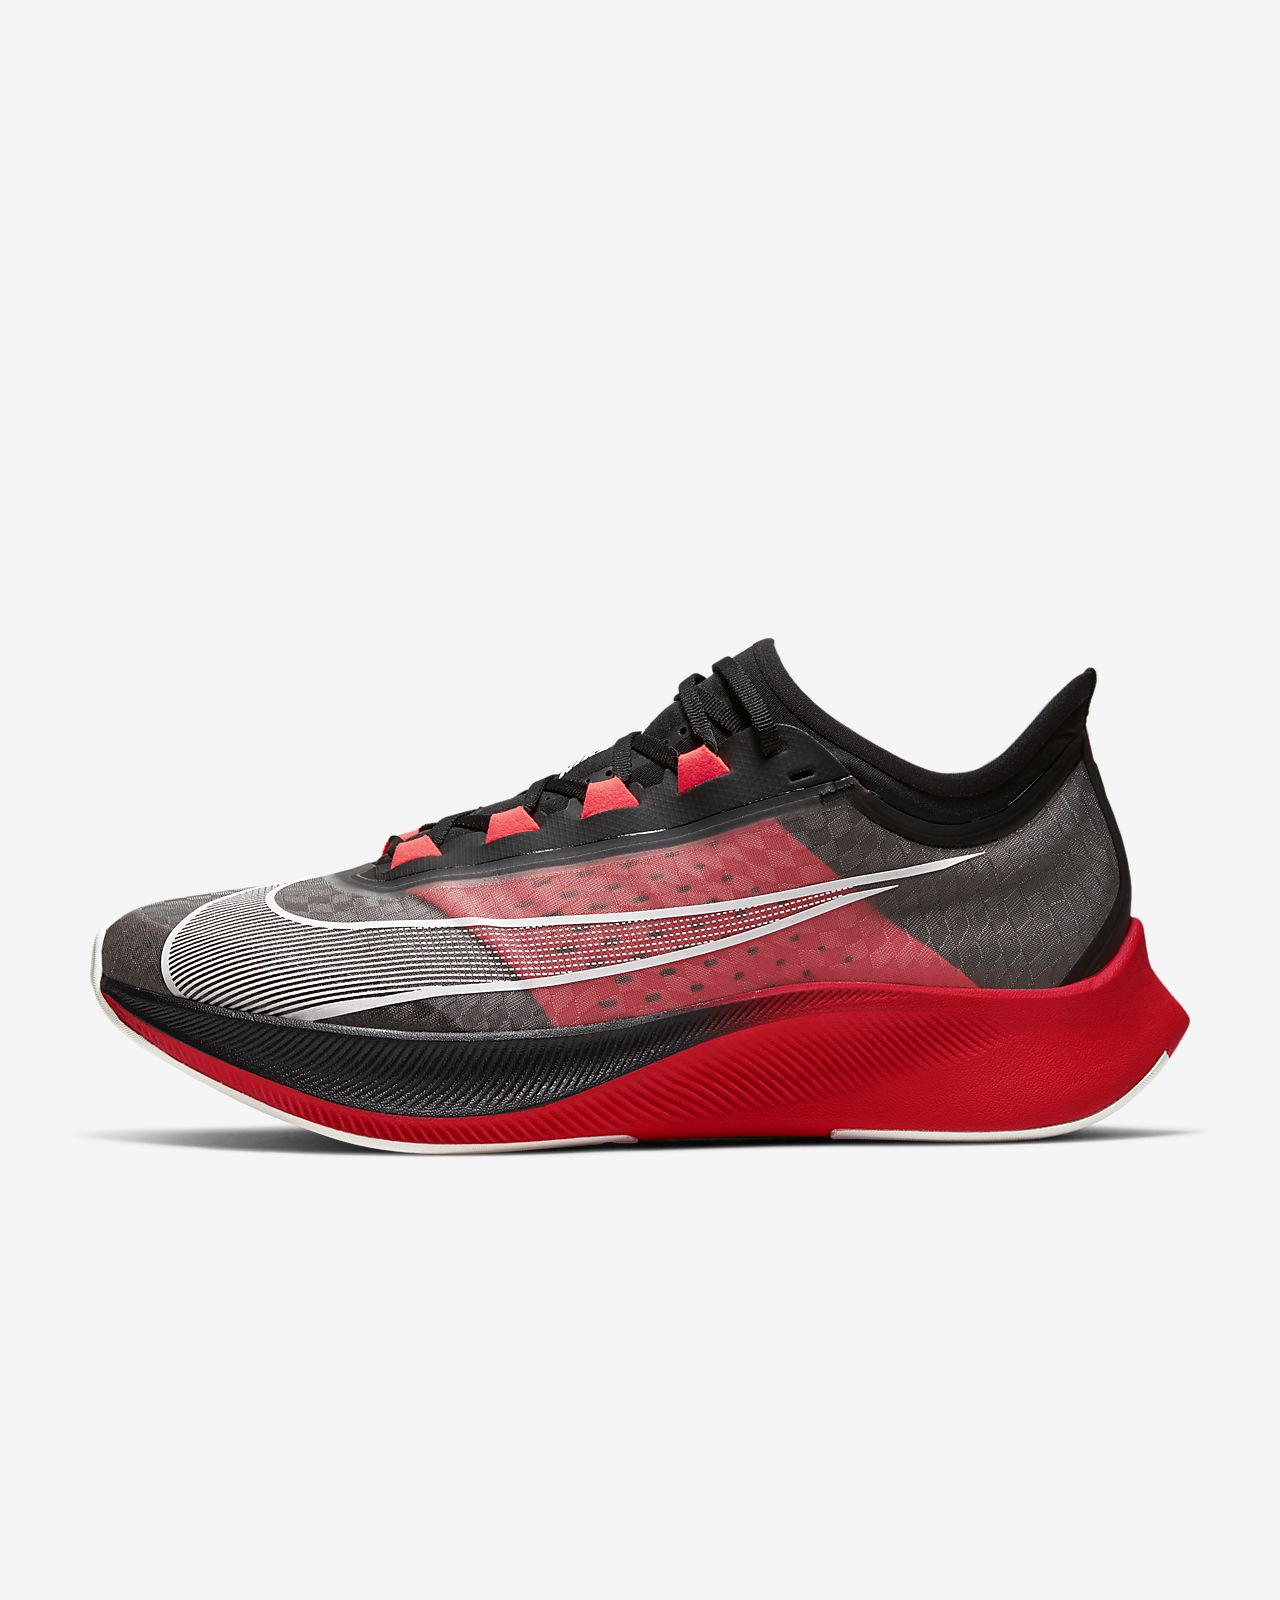 Nike Zoom Fly 3 NYC Men's Running Shoe